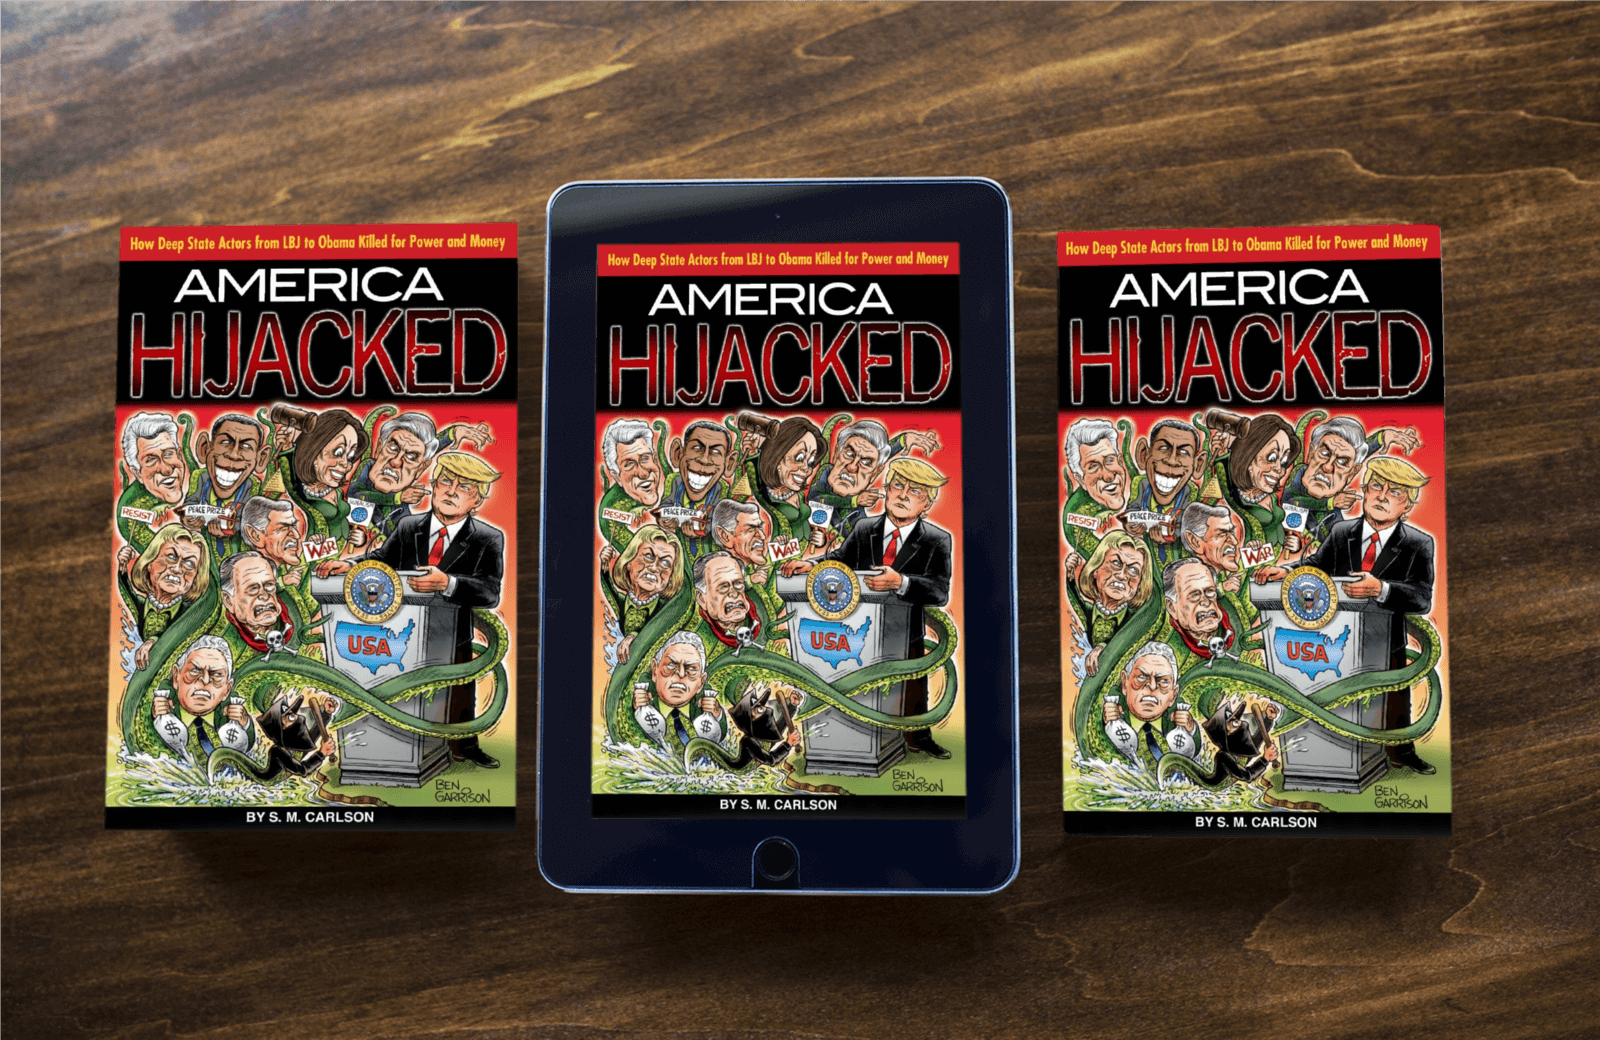 America Hijacked Book - Hardcover, Paperback, and Amazon Kindle Edition